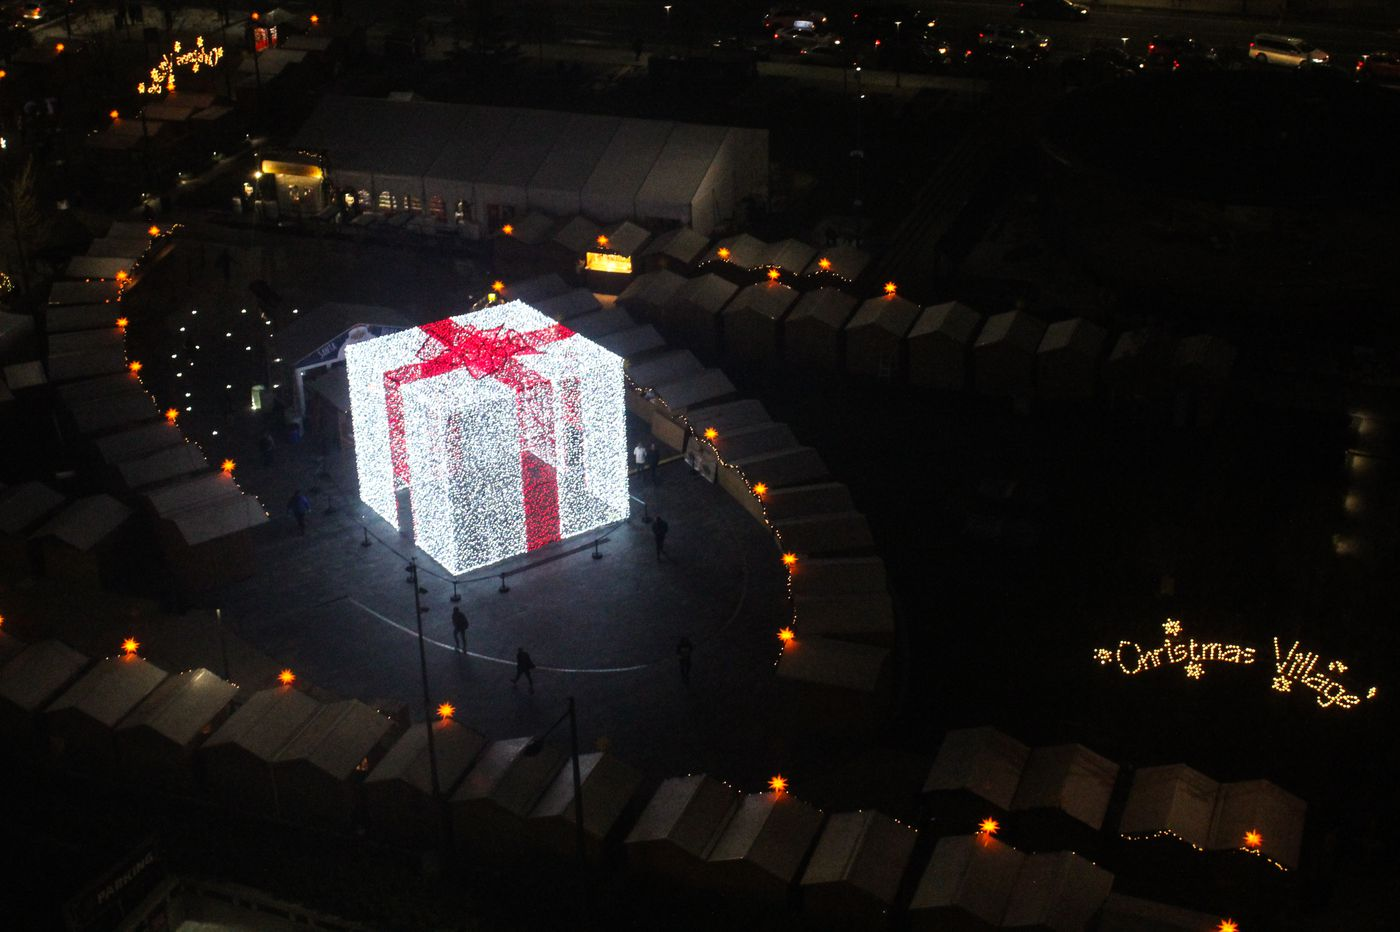 Giant light-up present to debut at Christmas Village this year